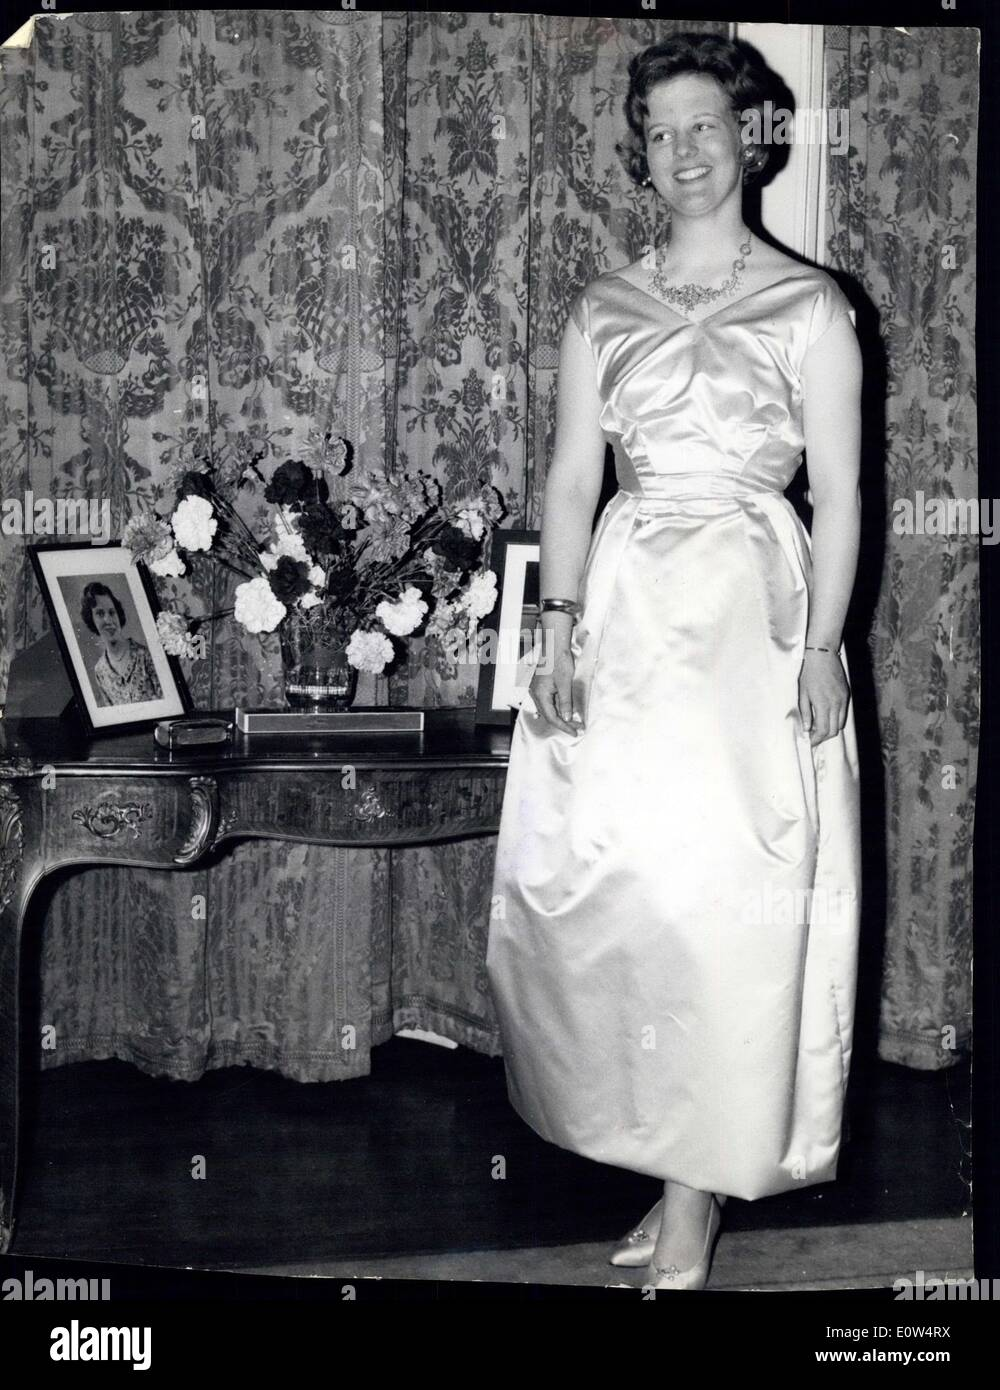 Apr. 16, 1961 - 16-4-61 Denmark's Princess celebrates 21st birthday in London. She wears a borrowed gown. Princess Margrethe of Denmark held her Key of the Castle party at the Danish Embassy in London this evening. The Princess who is studying Archaeology in Cambridge arrived in London only just in time for the party from her Easter Cavation in Norway because of the Danish Transport strike which also delayed the arrival of her party gown so she had to borrow a dress. Keystone Photo Shows: Princess Margrethe in her borrowed gown this evening. It is in yellow satin. - Stock Image